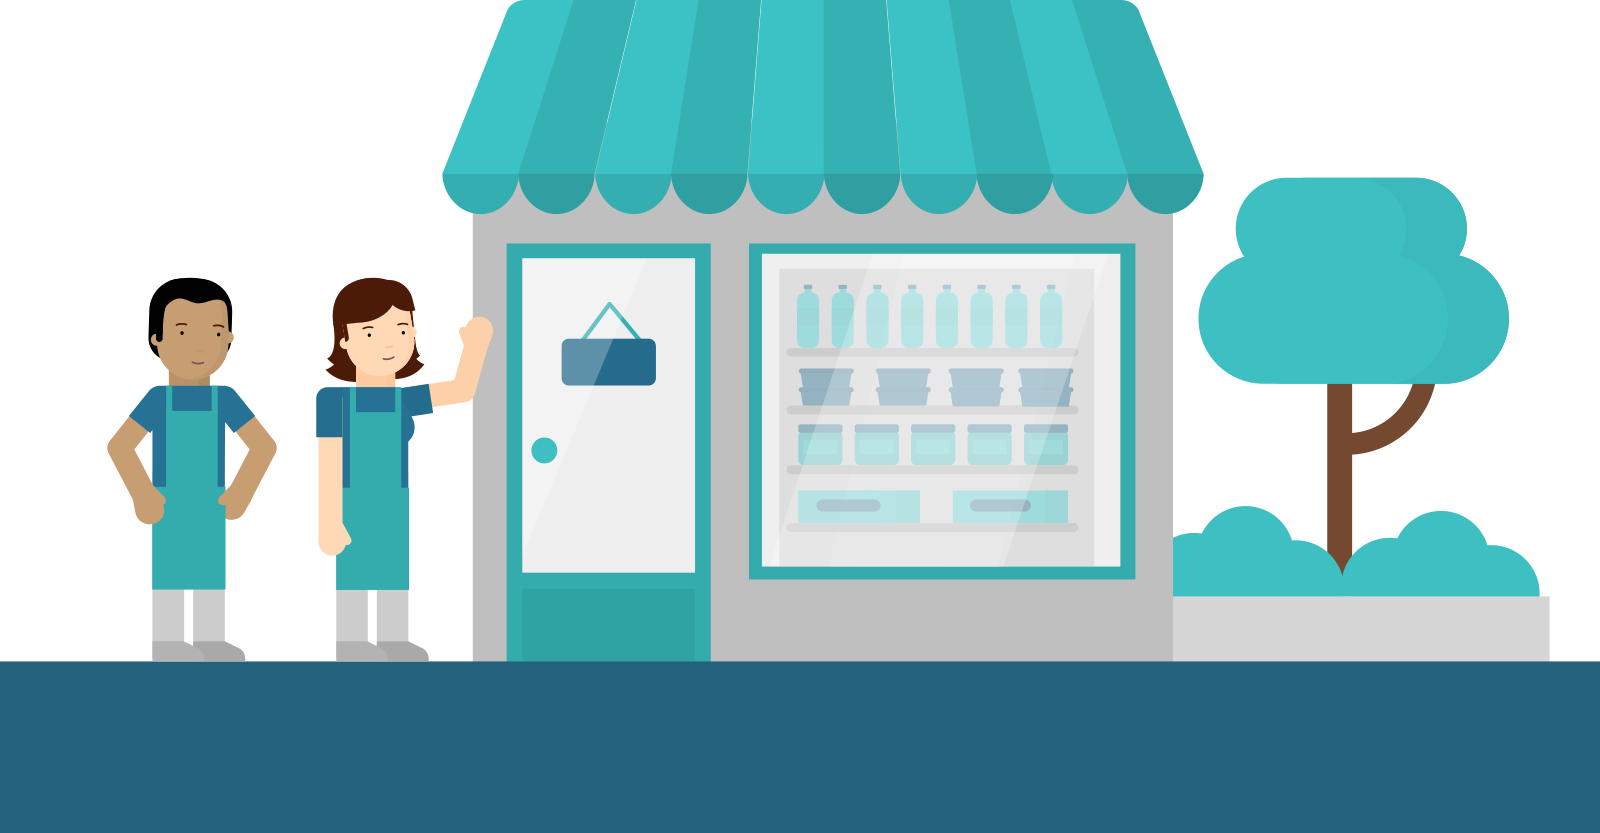 Marketing Tactics to Acquire Customers As a New Business